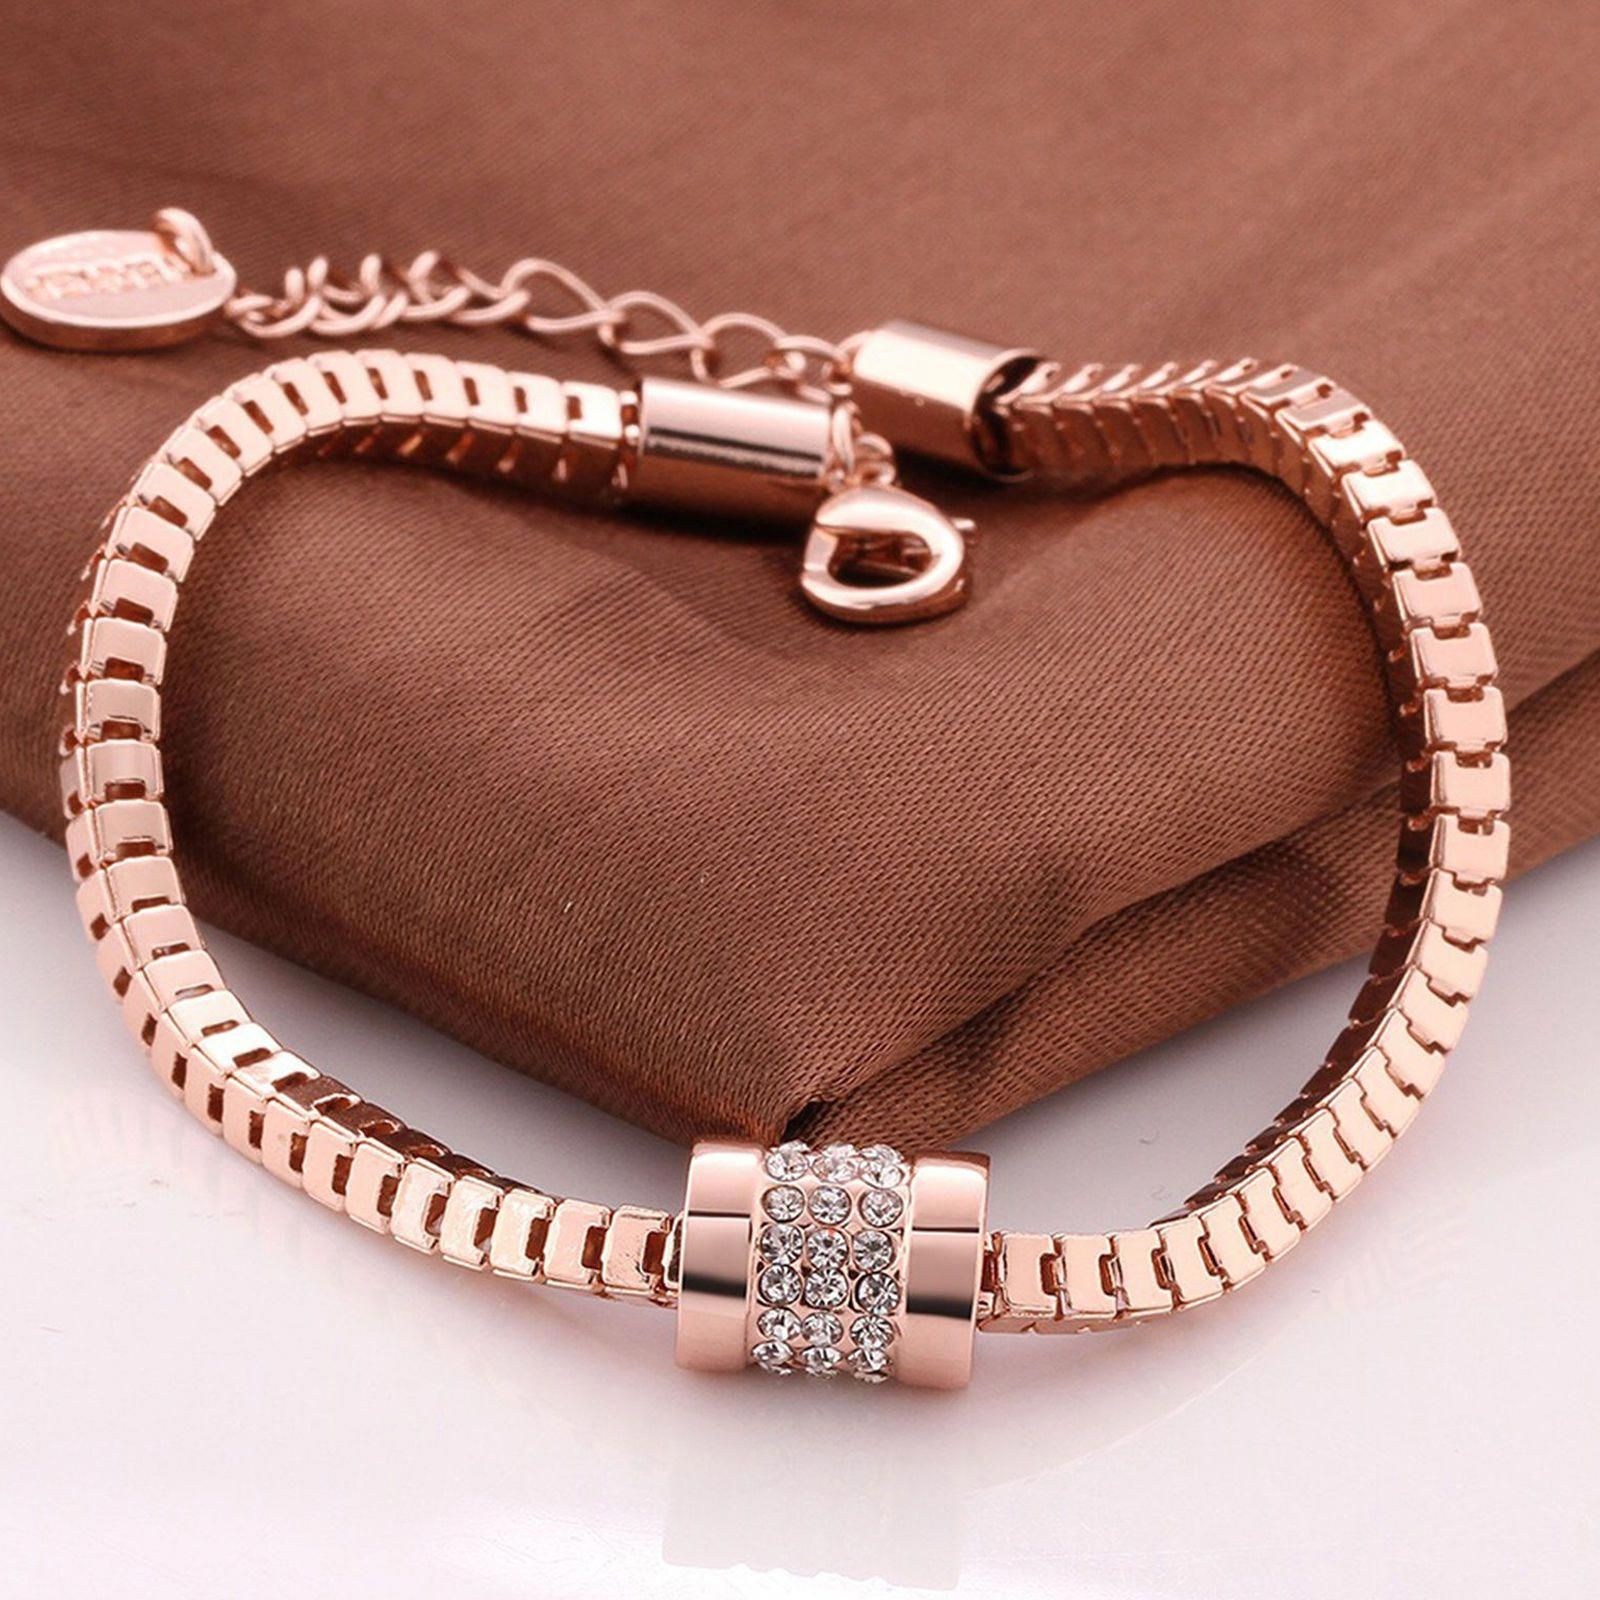 434e524e633 Women Fashion 18K Rose Gold Plated Crystal Bracelet Bangle Trendy ...